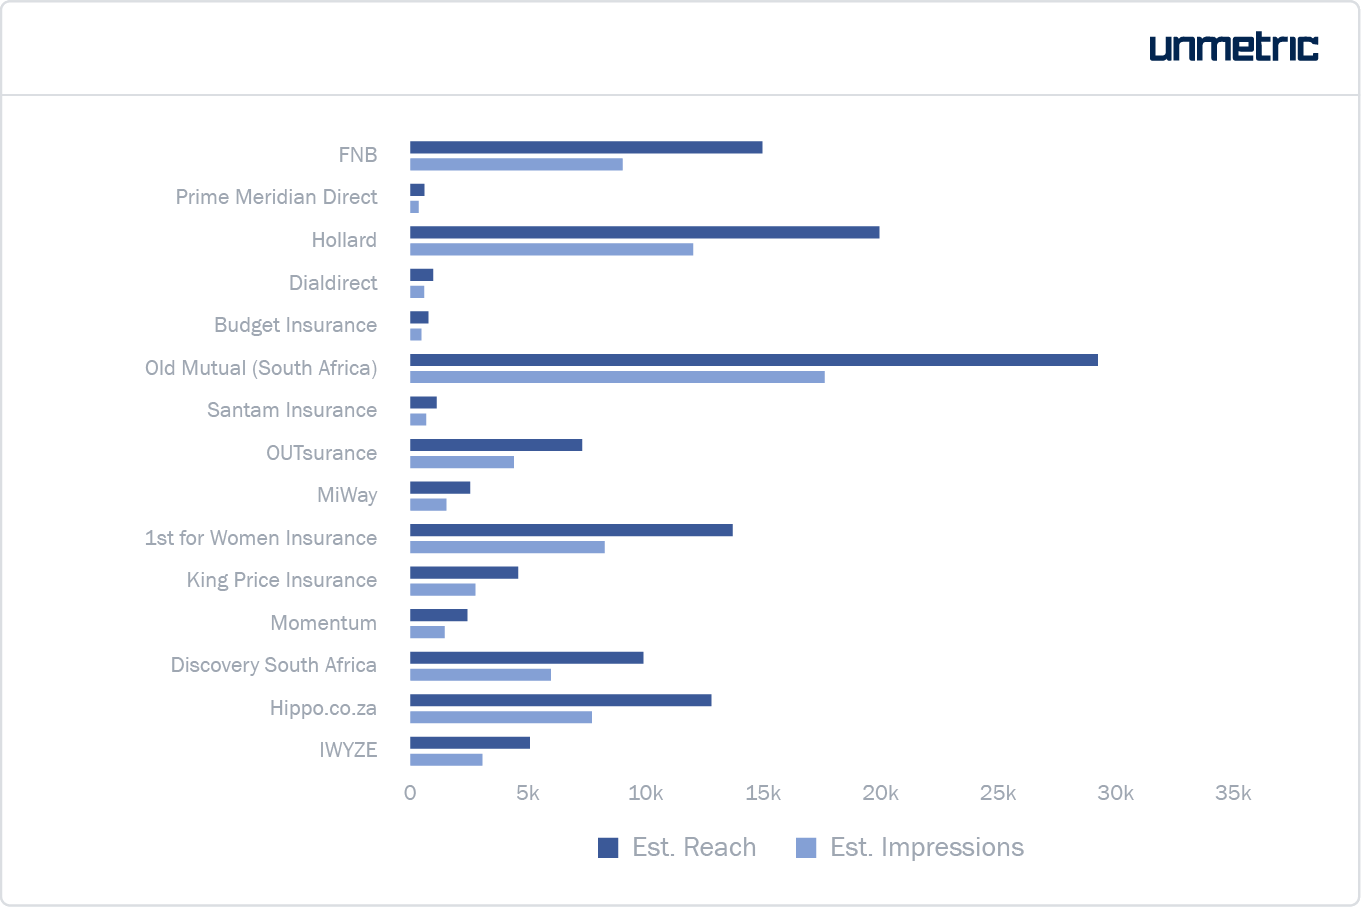 Estimated reach and impressions received by each brand